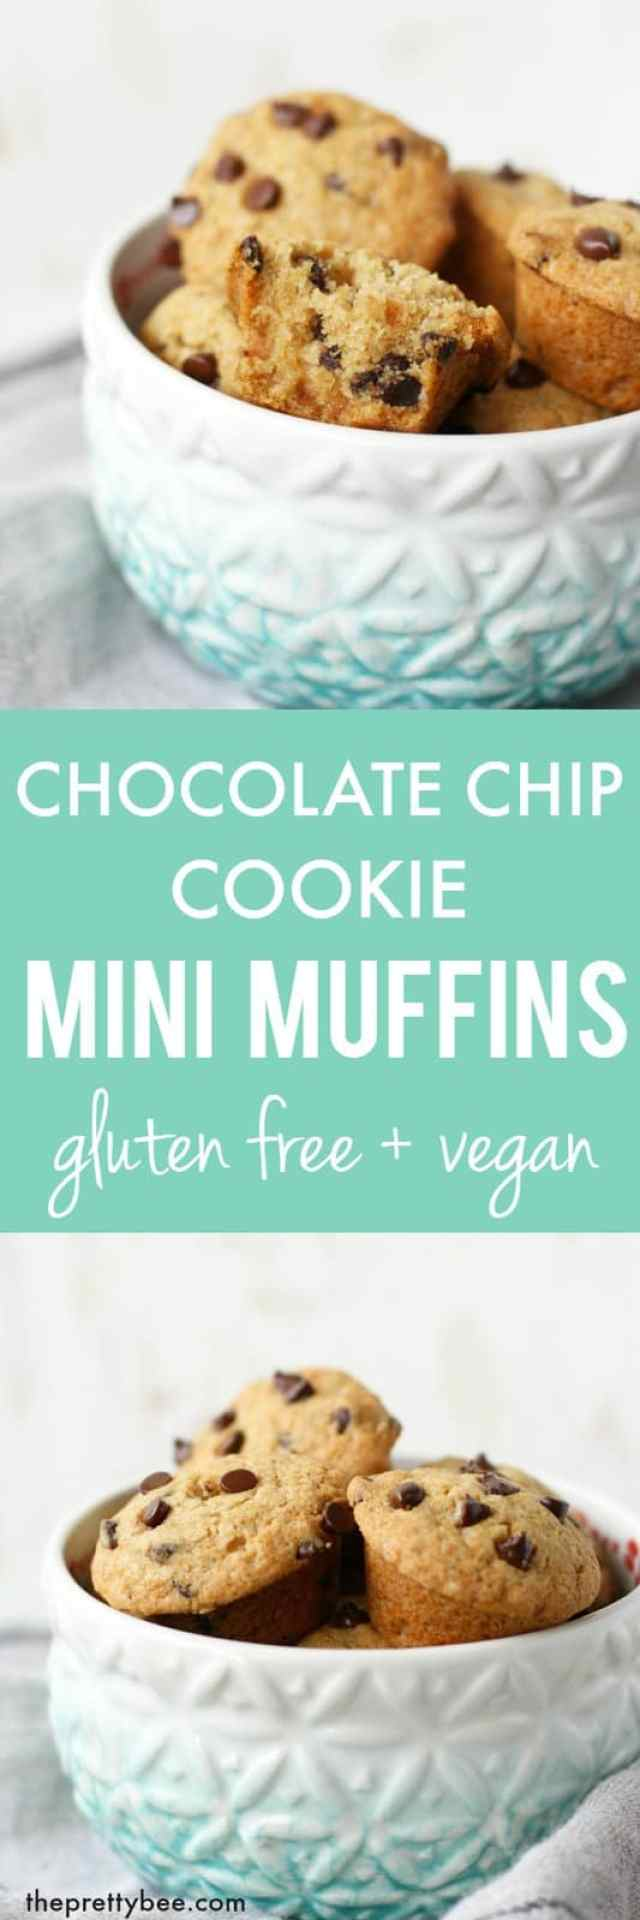 Easy and tasty chocolate chip cookie mini muffin recipe